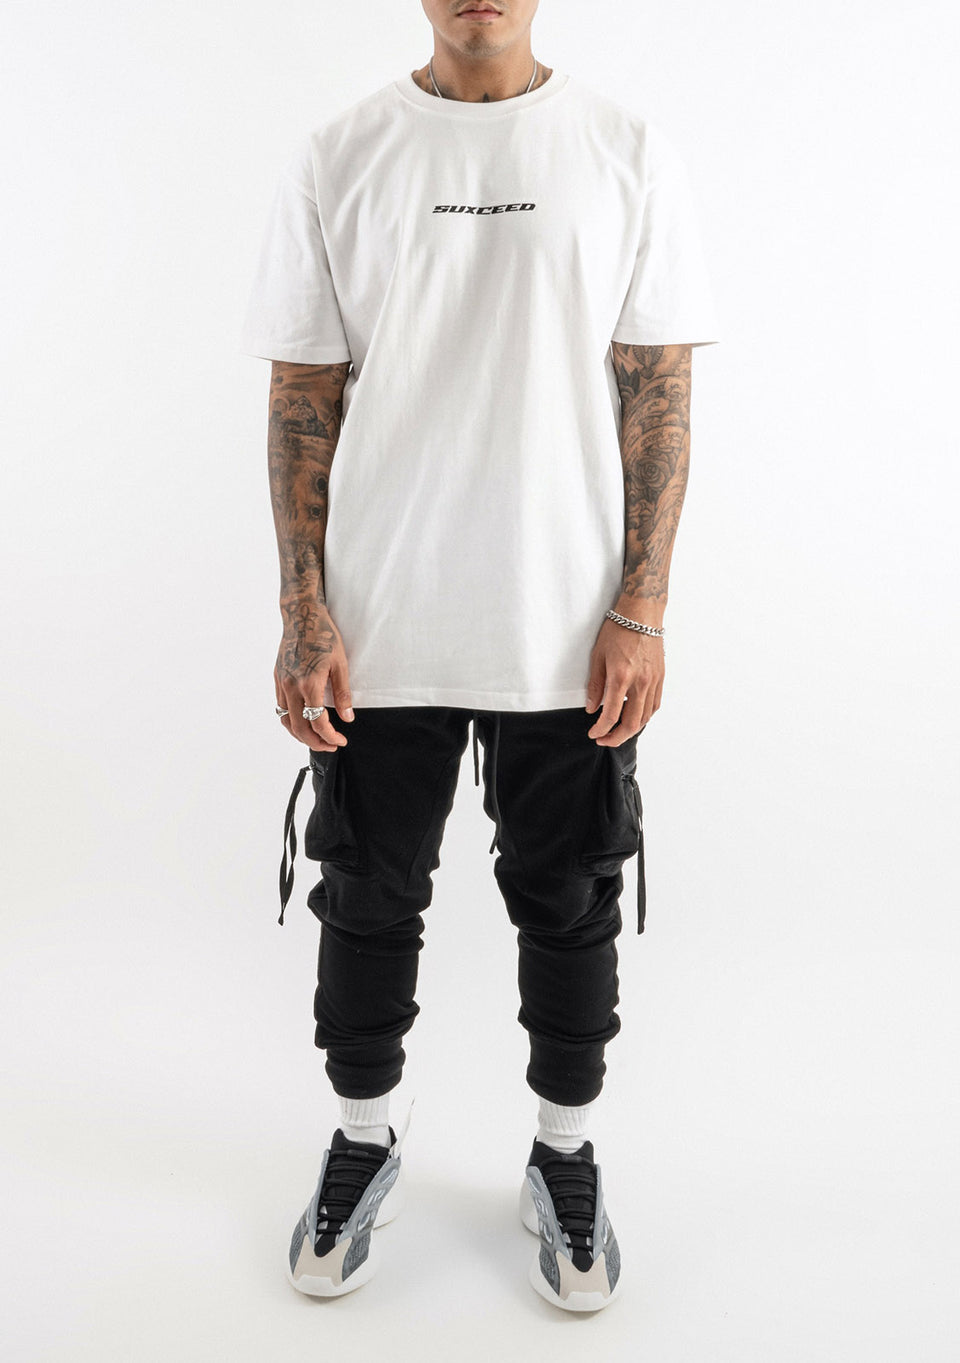 Suxceed Reflekt Oversized Tshirt (WHITE)